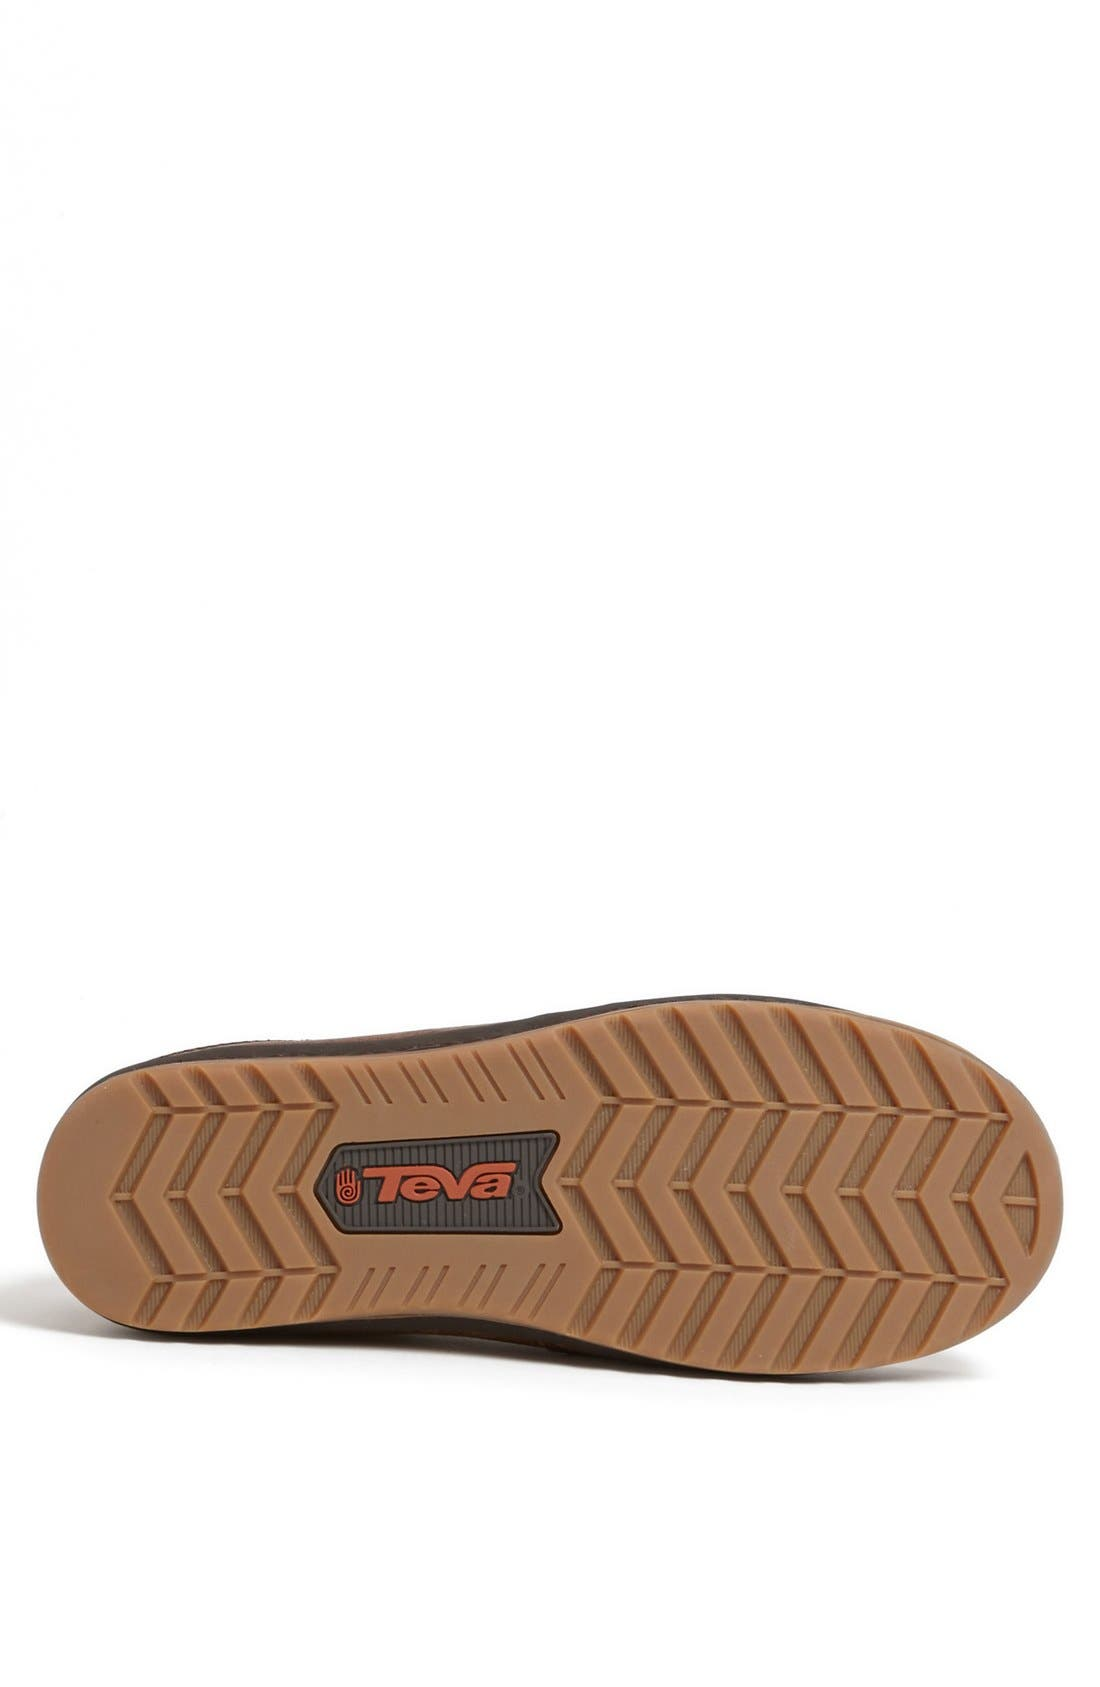 Alternate Image 4  - Teva 'Clifton Creek' Leather Driving Moccasin